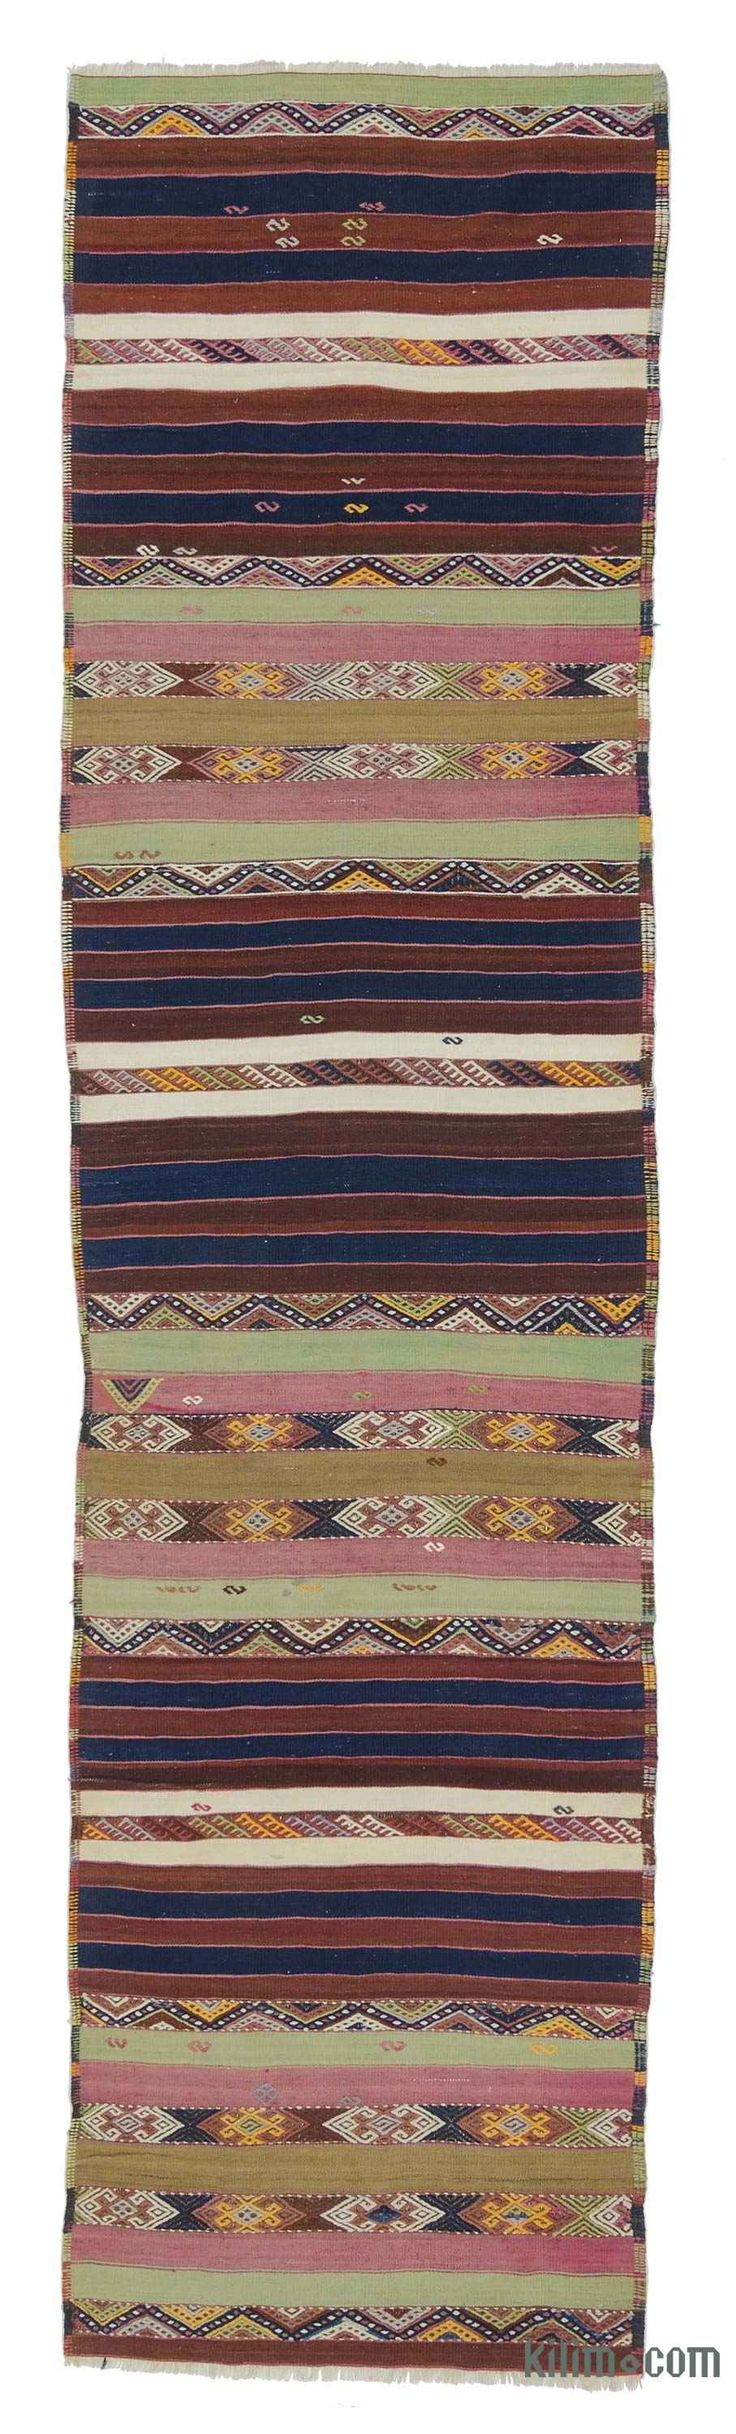 Vintage Malatya kilim runner rug embroidered with jijims. This piece is handwoven in 1940's and in very good condition. Malatya, a Turkish town in eastern Anatolia, is a kilim production center where good quality weavings are made.